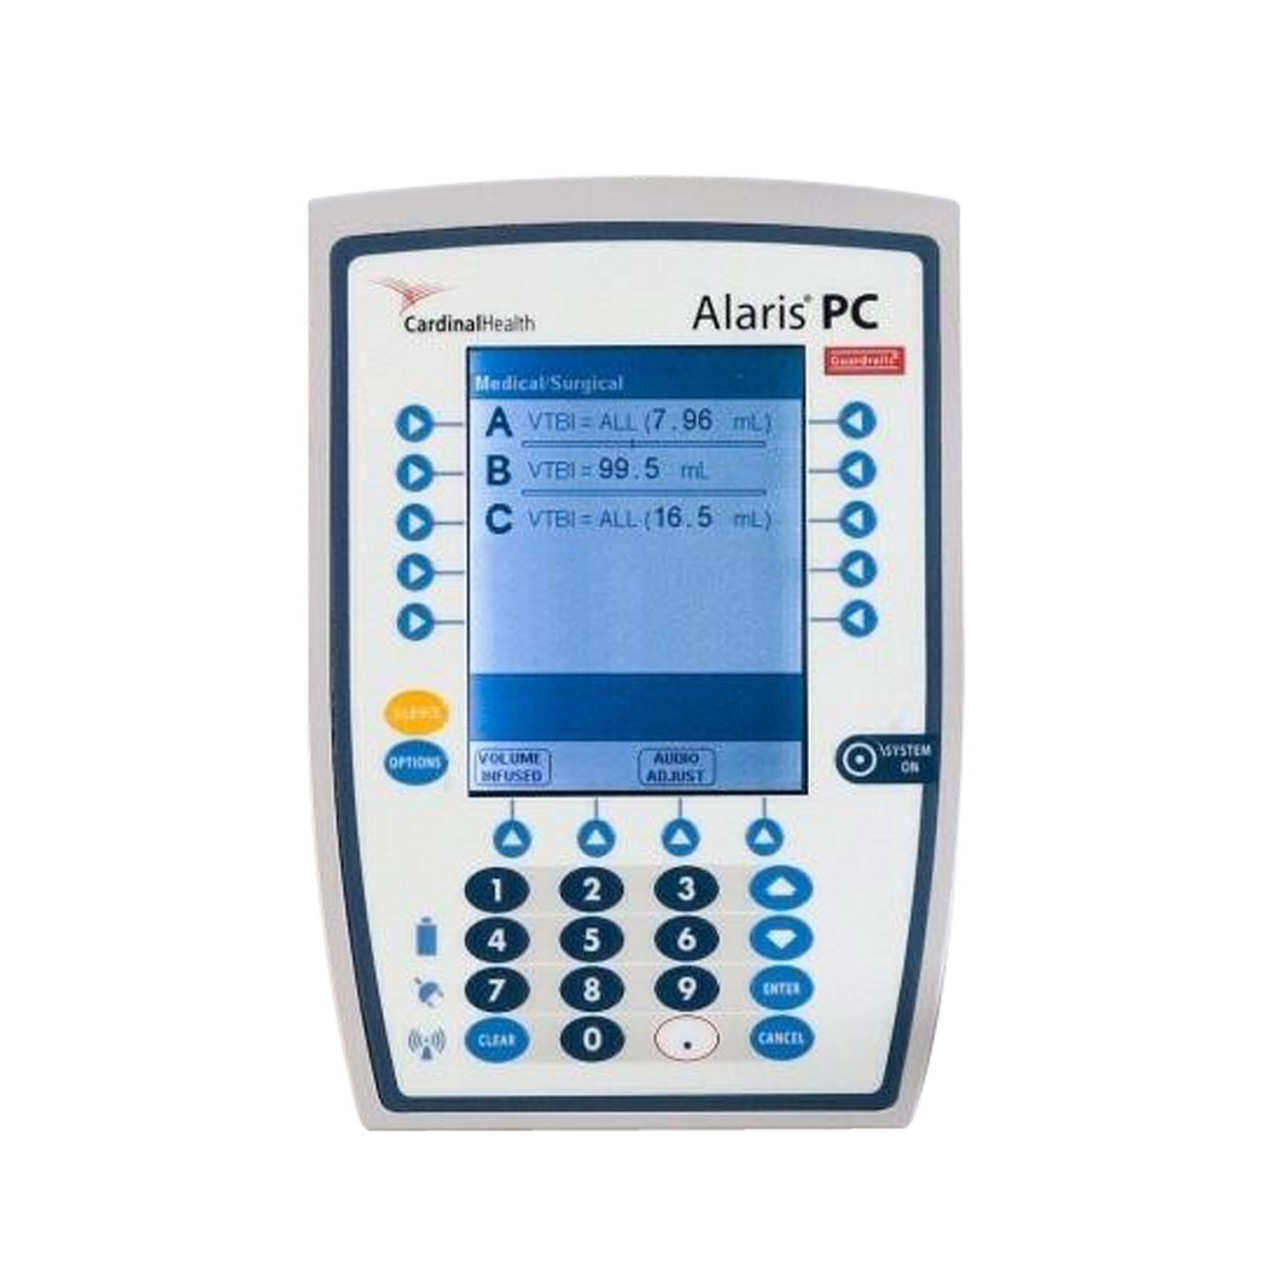 Alaris 8015 Poc Infusion Pump Manual Guide